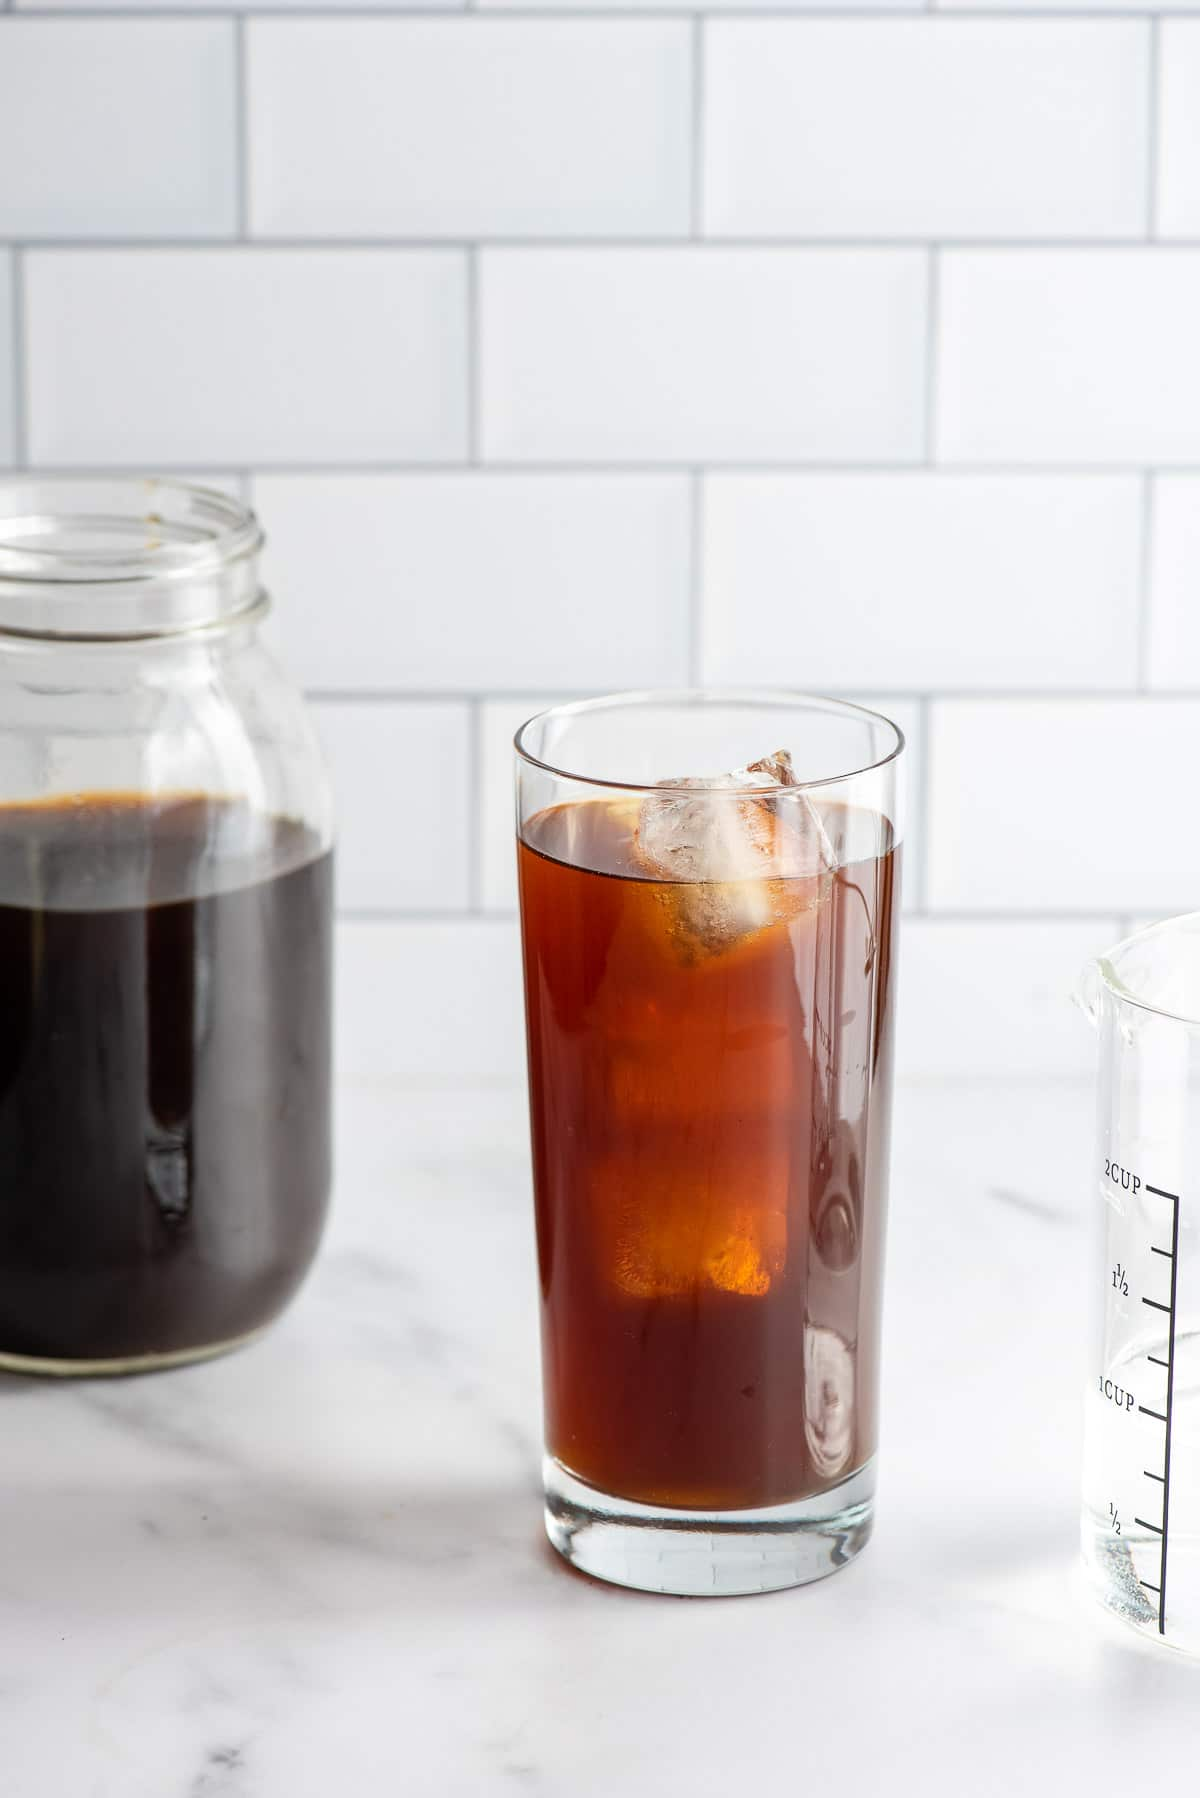 Cold Brew coffee concentrate and water in a tall glass with ice